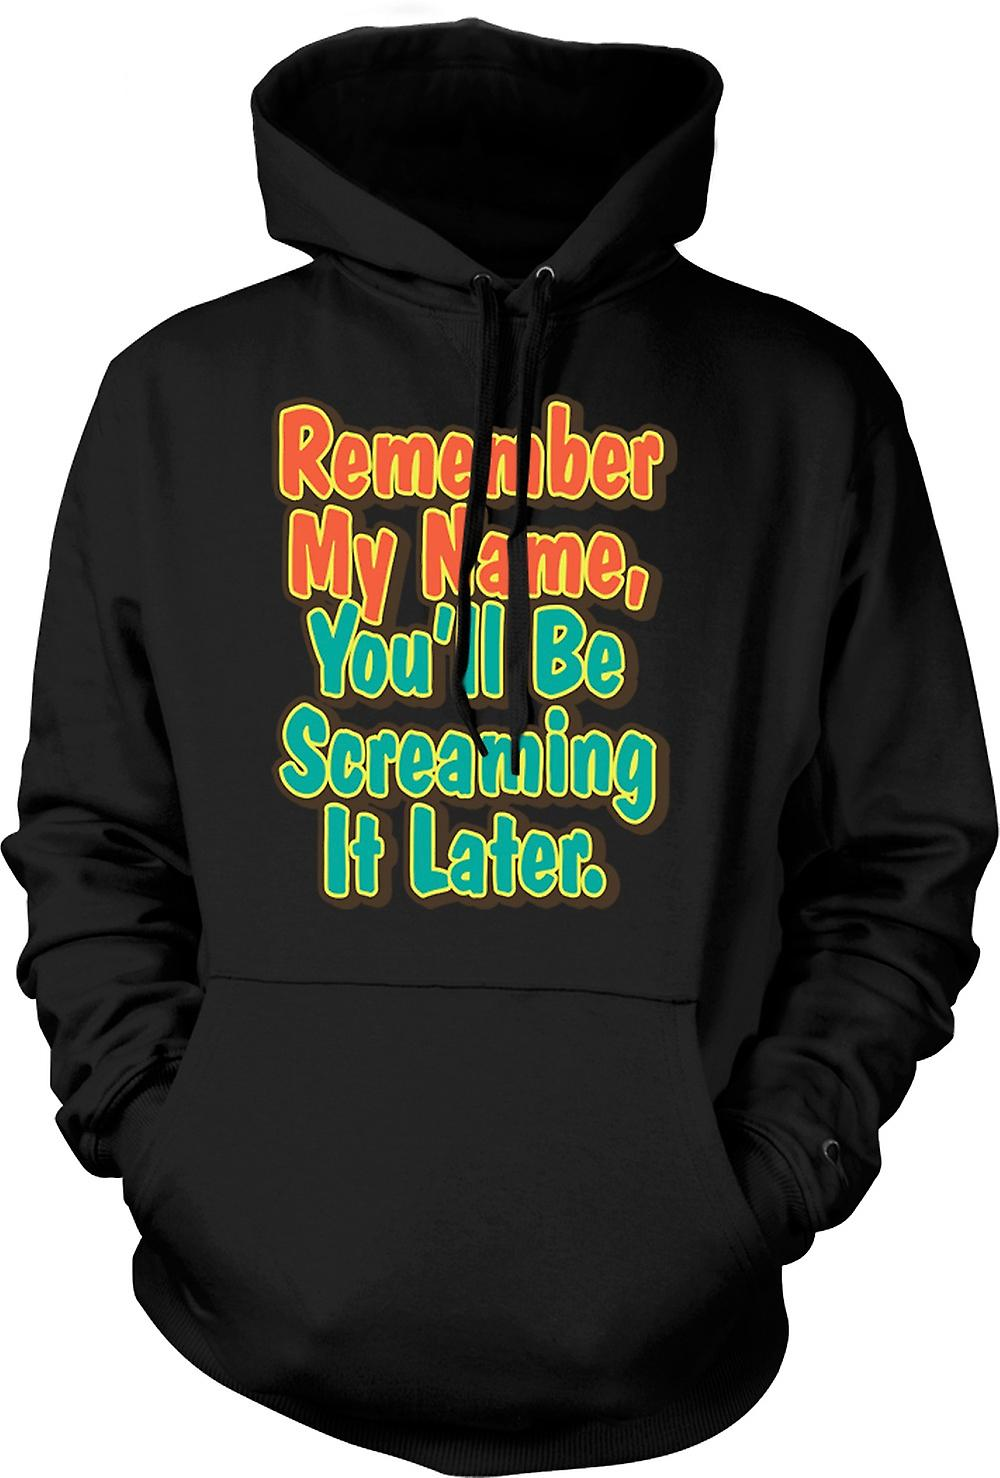 Mens Hoodie - Remember My Name, You'll Be Screaming It Later